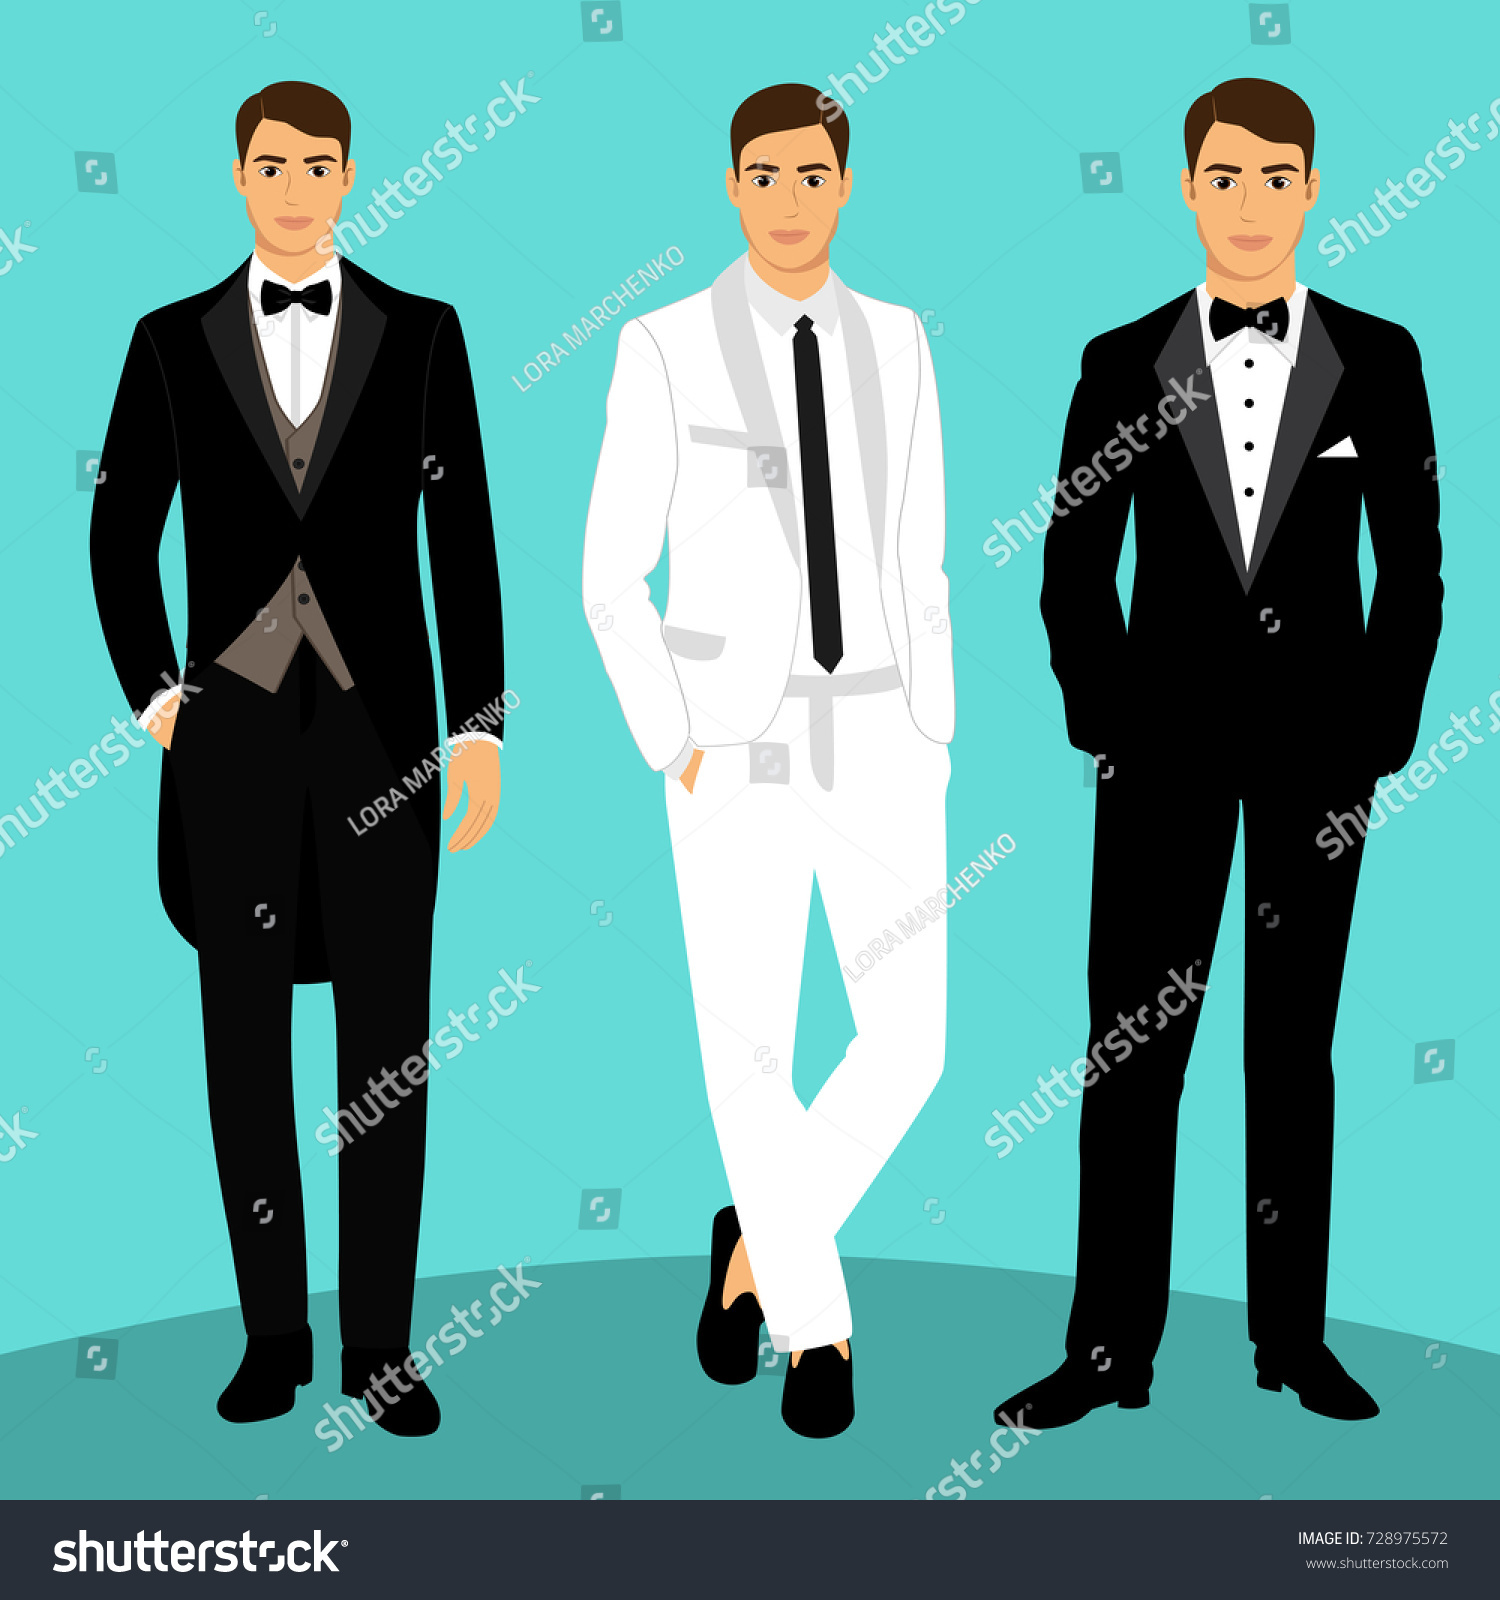 Wedding Mens Suit Tuxedo Collection Groom Stock Illustration ...